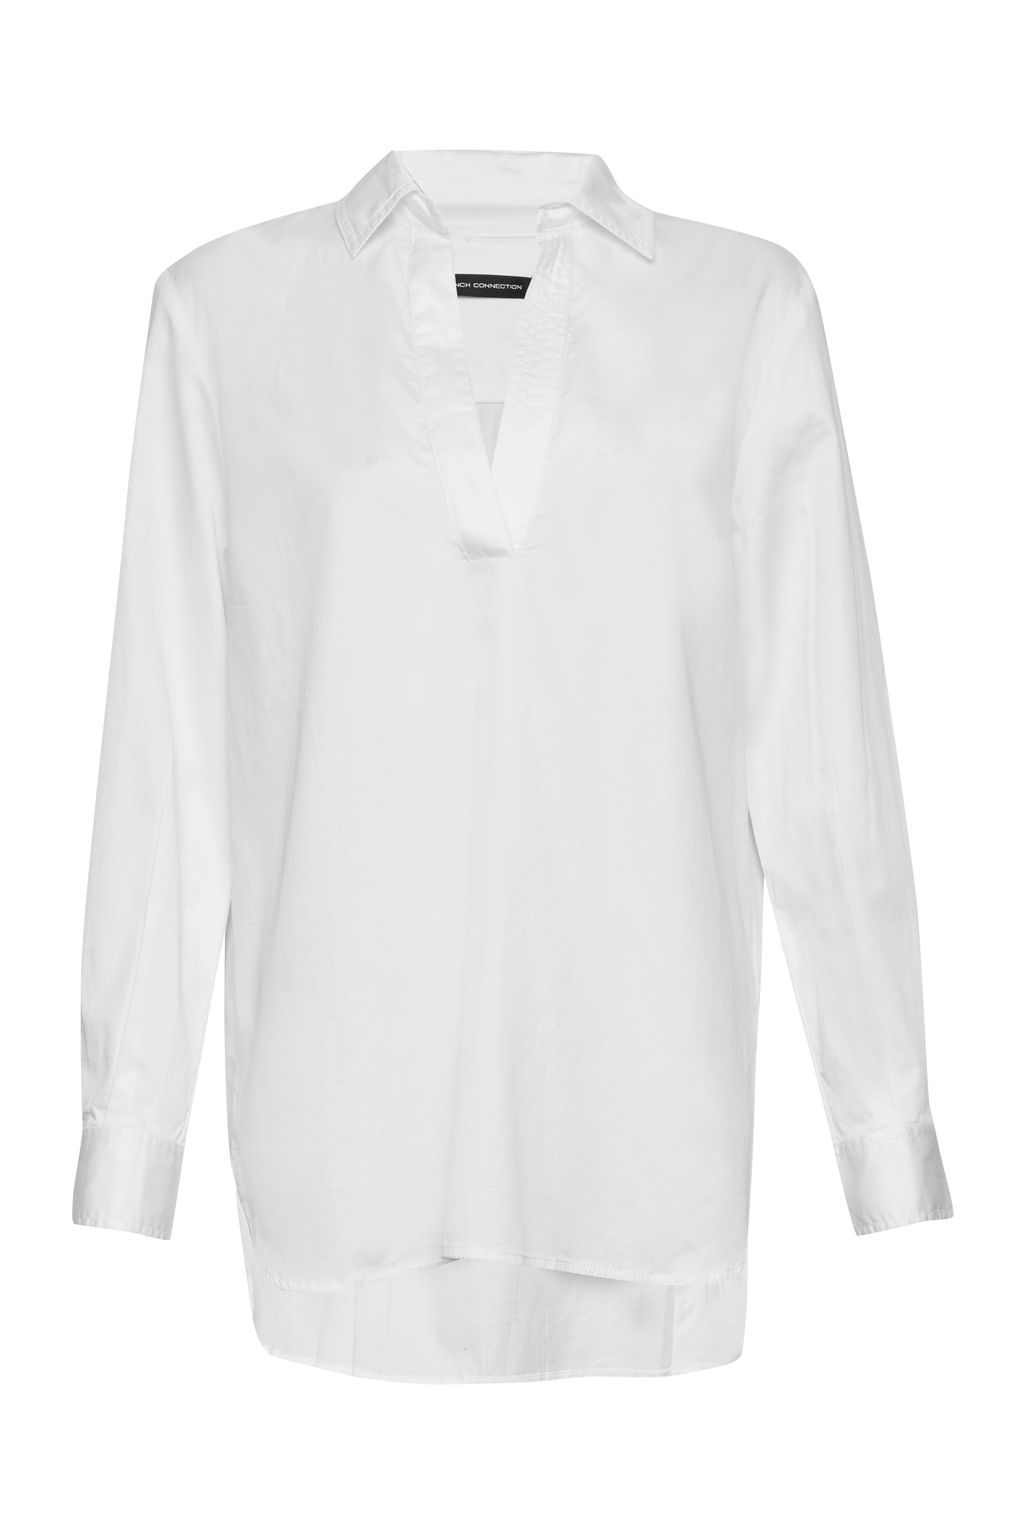 French Connection Oldenburg Stitch V Neck Shirt, White